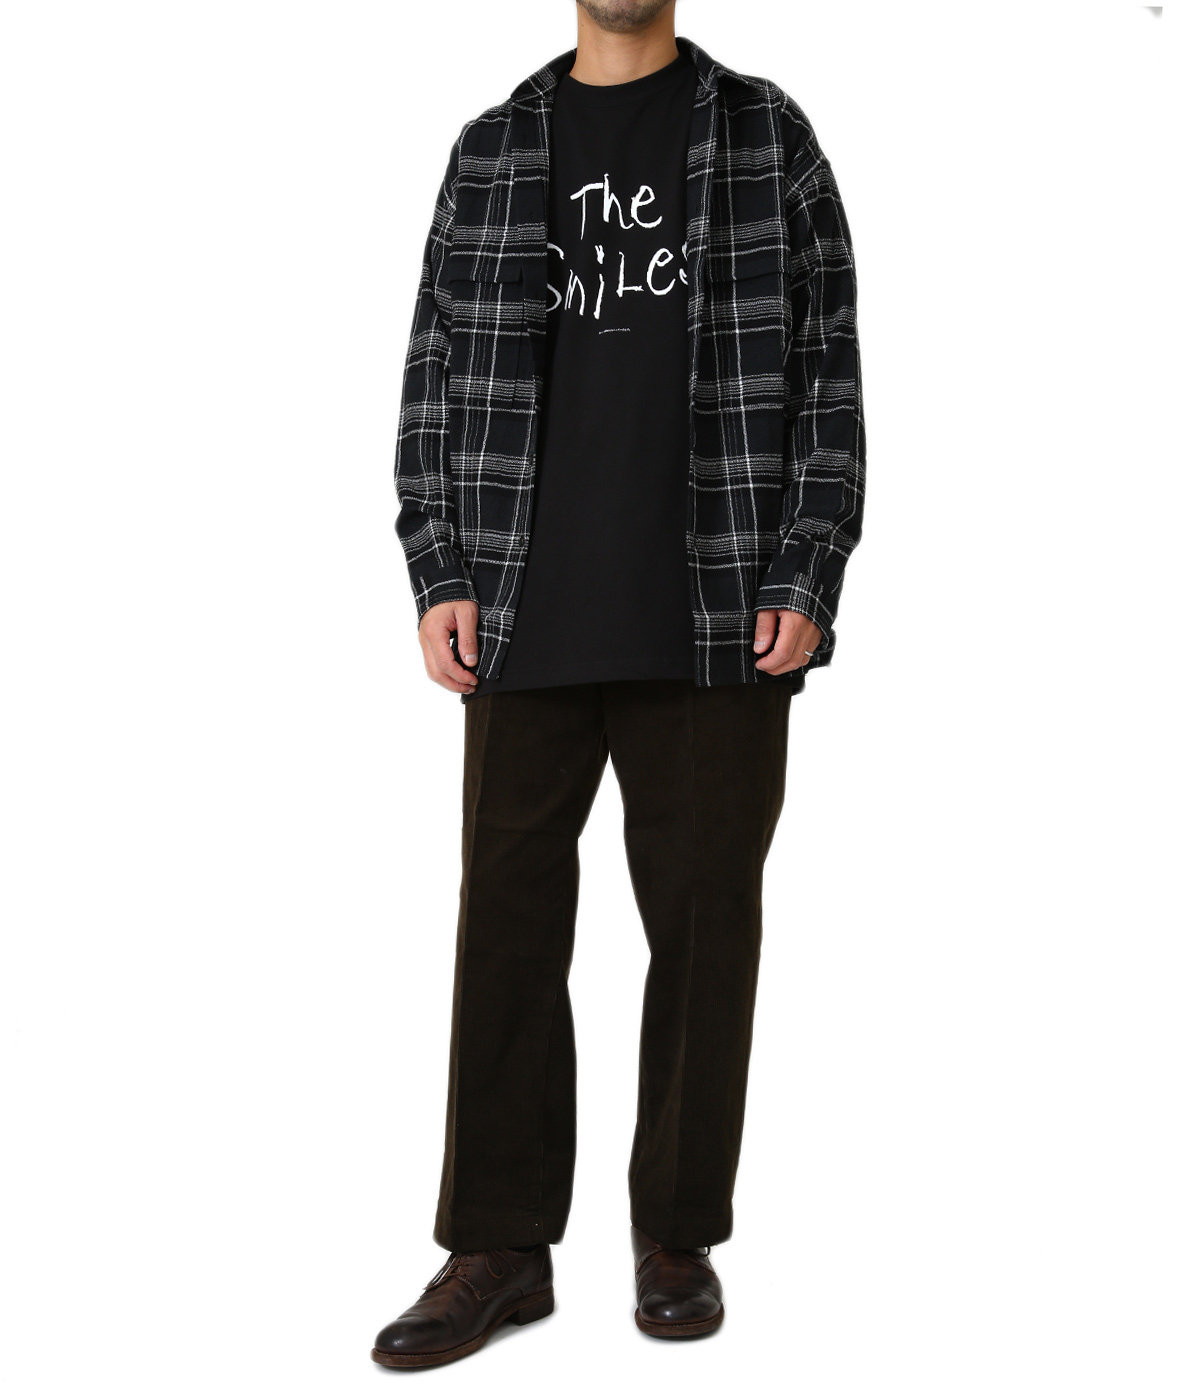 【ONLY ARK】別注 LS TEE THE SMILES